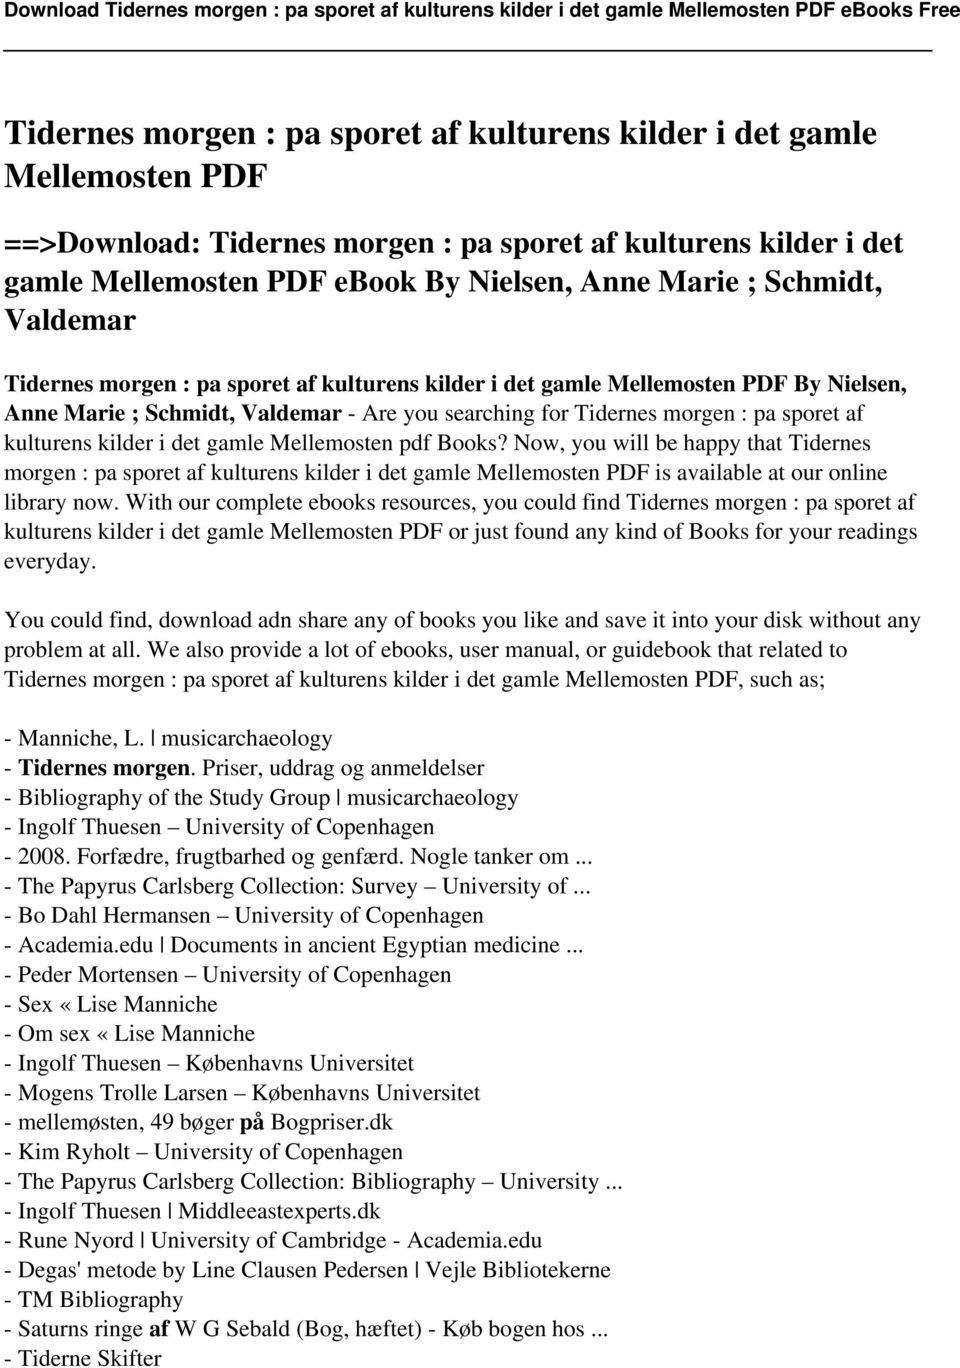 kulturens kilder i det gamle Mellemosten pdf Books? Now, you will be happy that Tidernes morgen : pa sporet af kulturens kilder i det gamle Mellemosten PDF is available at our online library now.